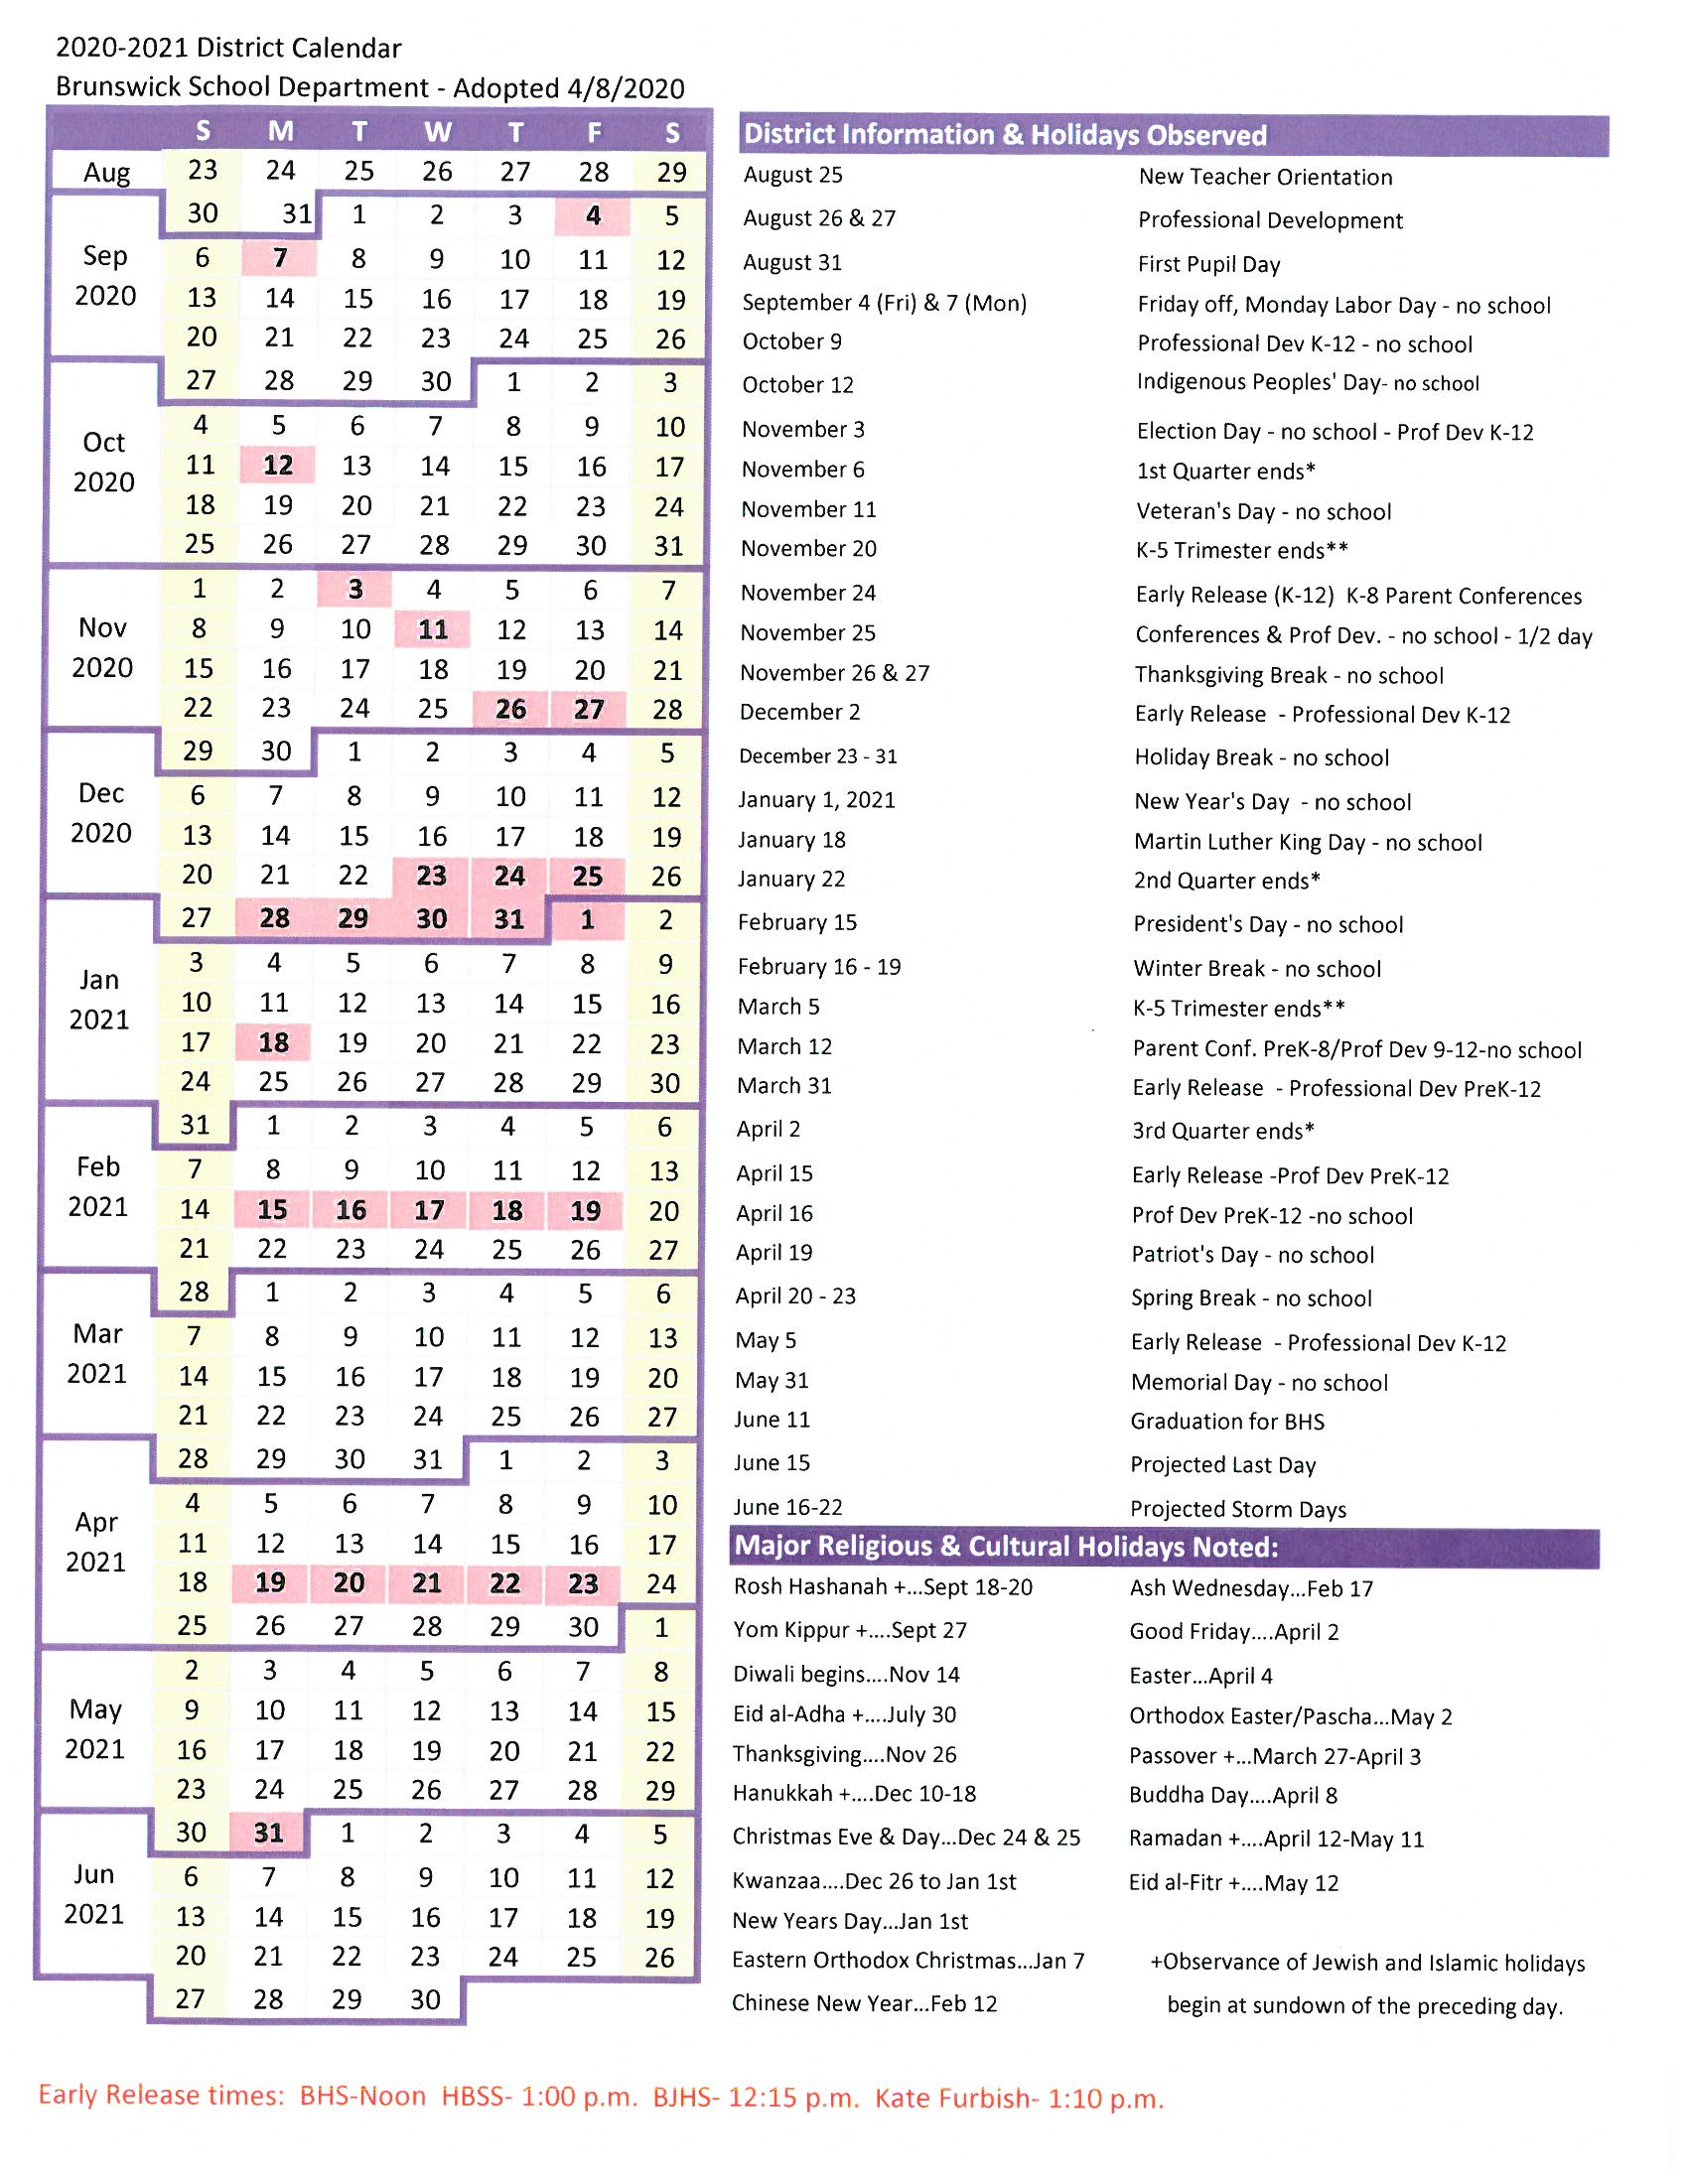 Dsm School Calendar | Printable Calendar 2020-2021 within Chart Of Sunrise And Sunset Times By Zip Code